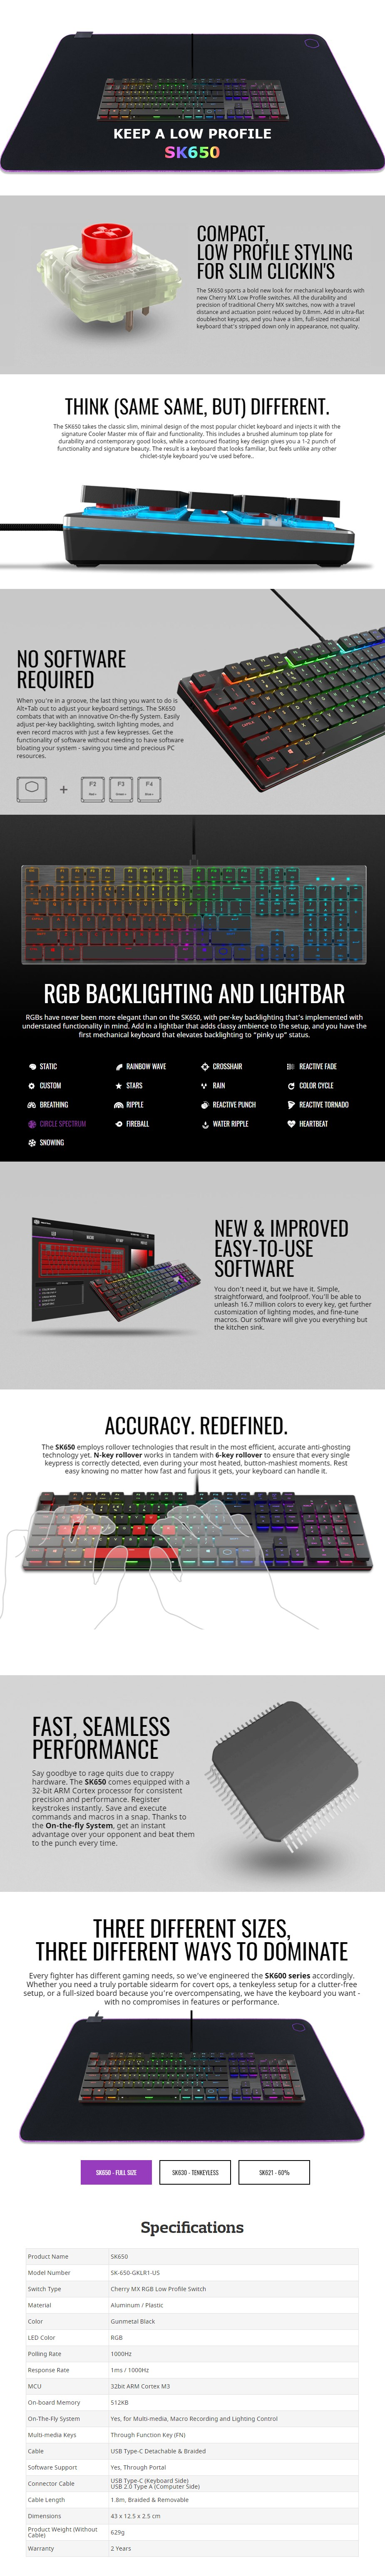 Cooler Master SK650 RGB Low Profile Mechanical Gaming Keyboard - Cherry MX Red - Desktop Overview 1